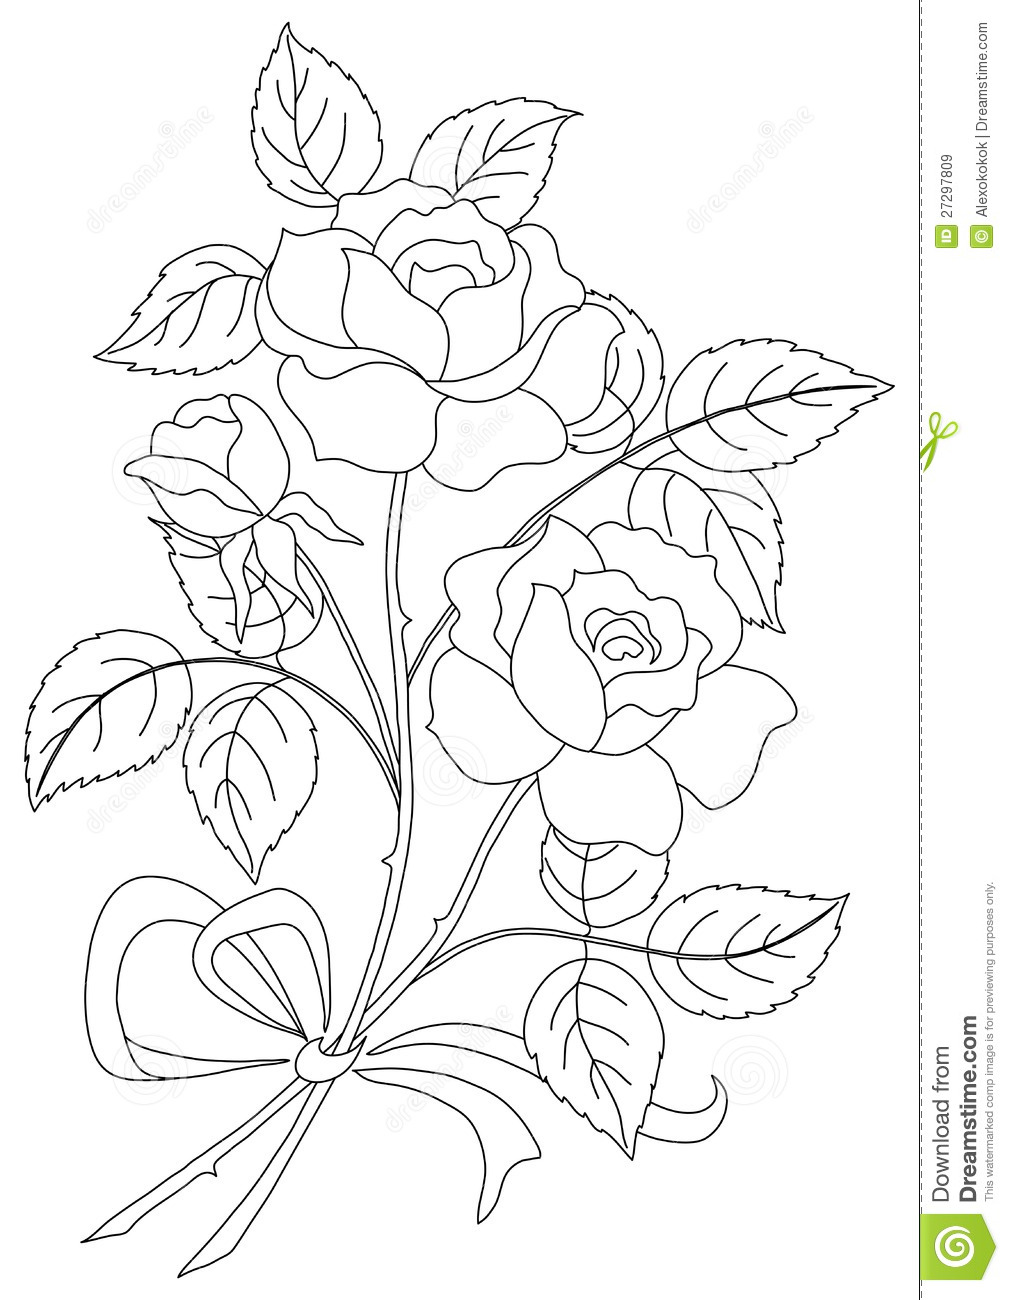 de bloemen namen contour toe vector illustratie